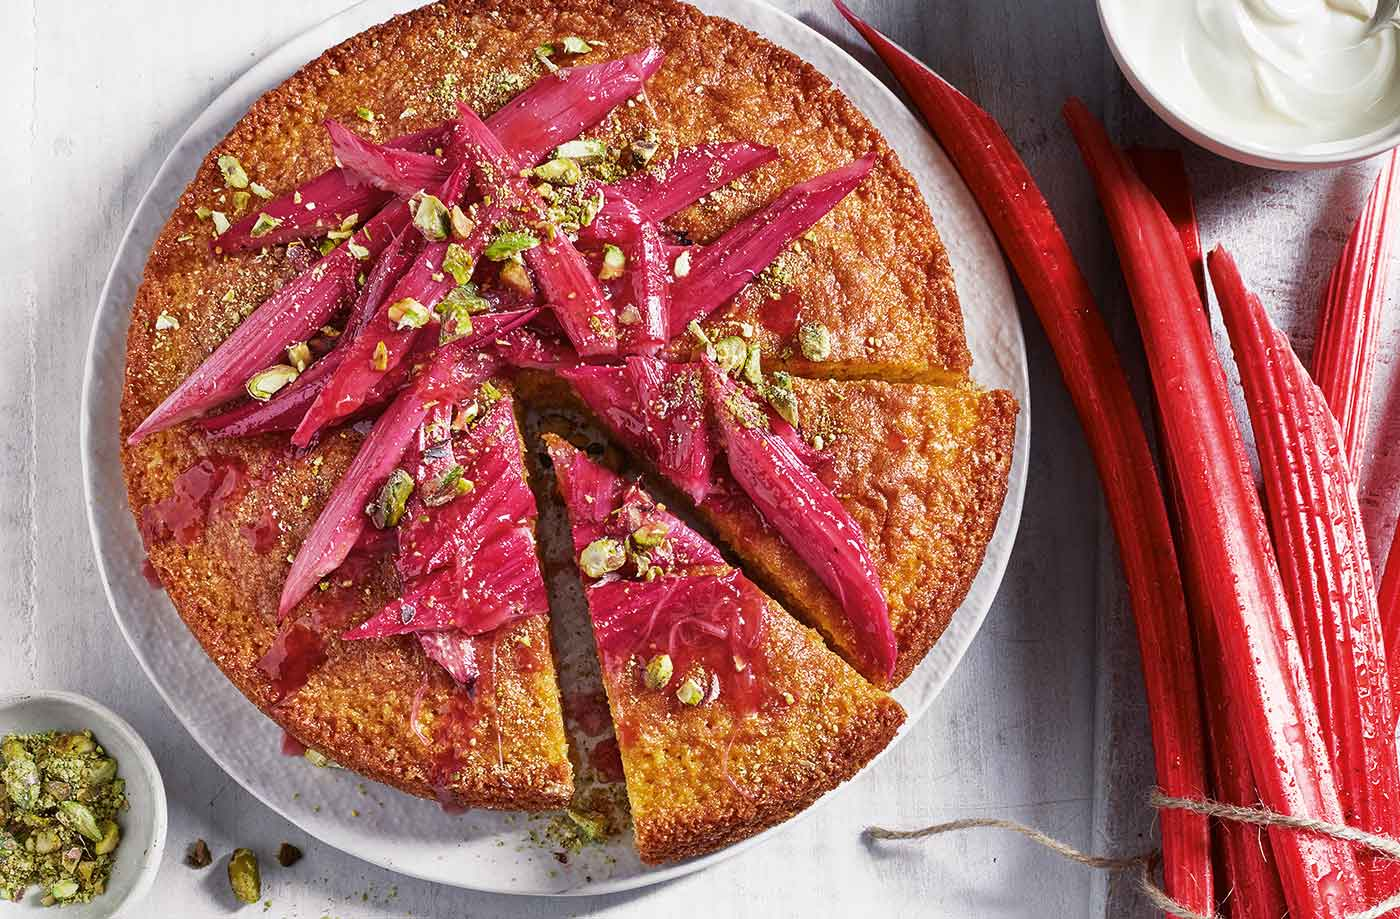 Pictures Of Rhubarb Cake